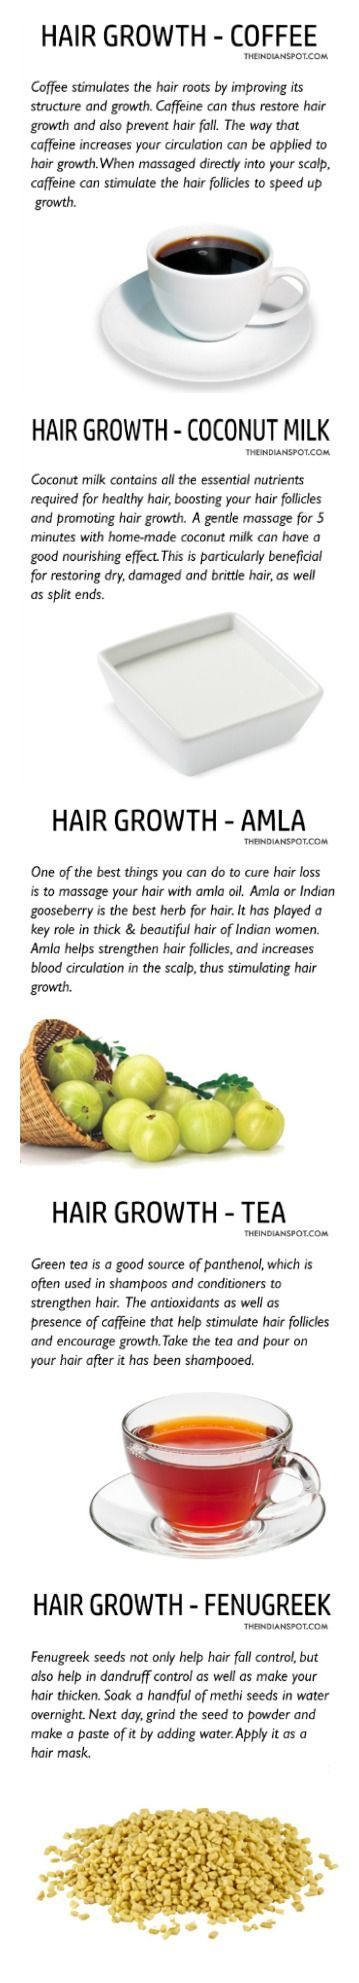 Natural hair growth remedies